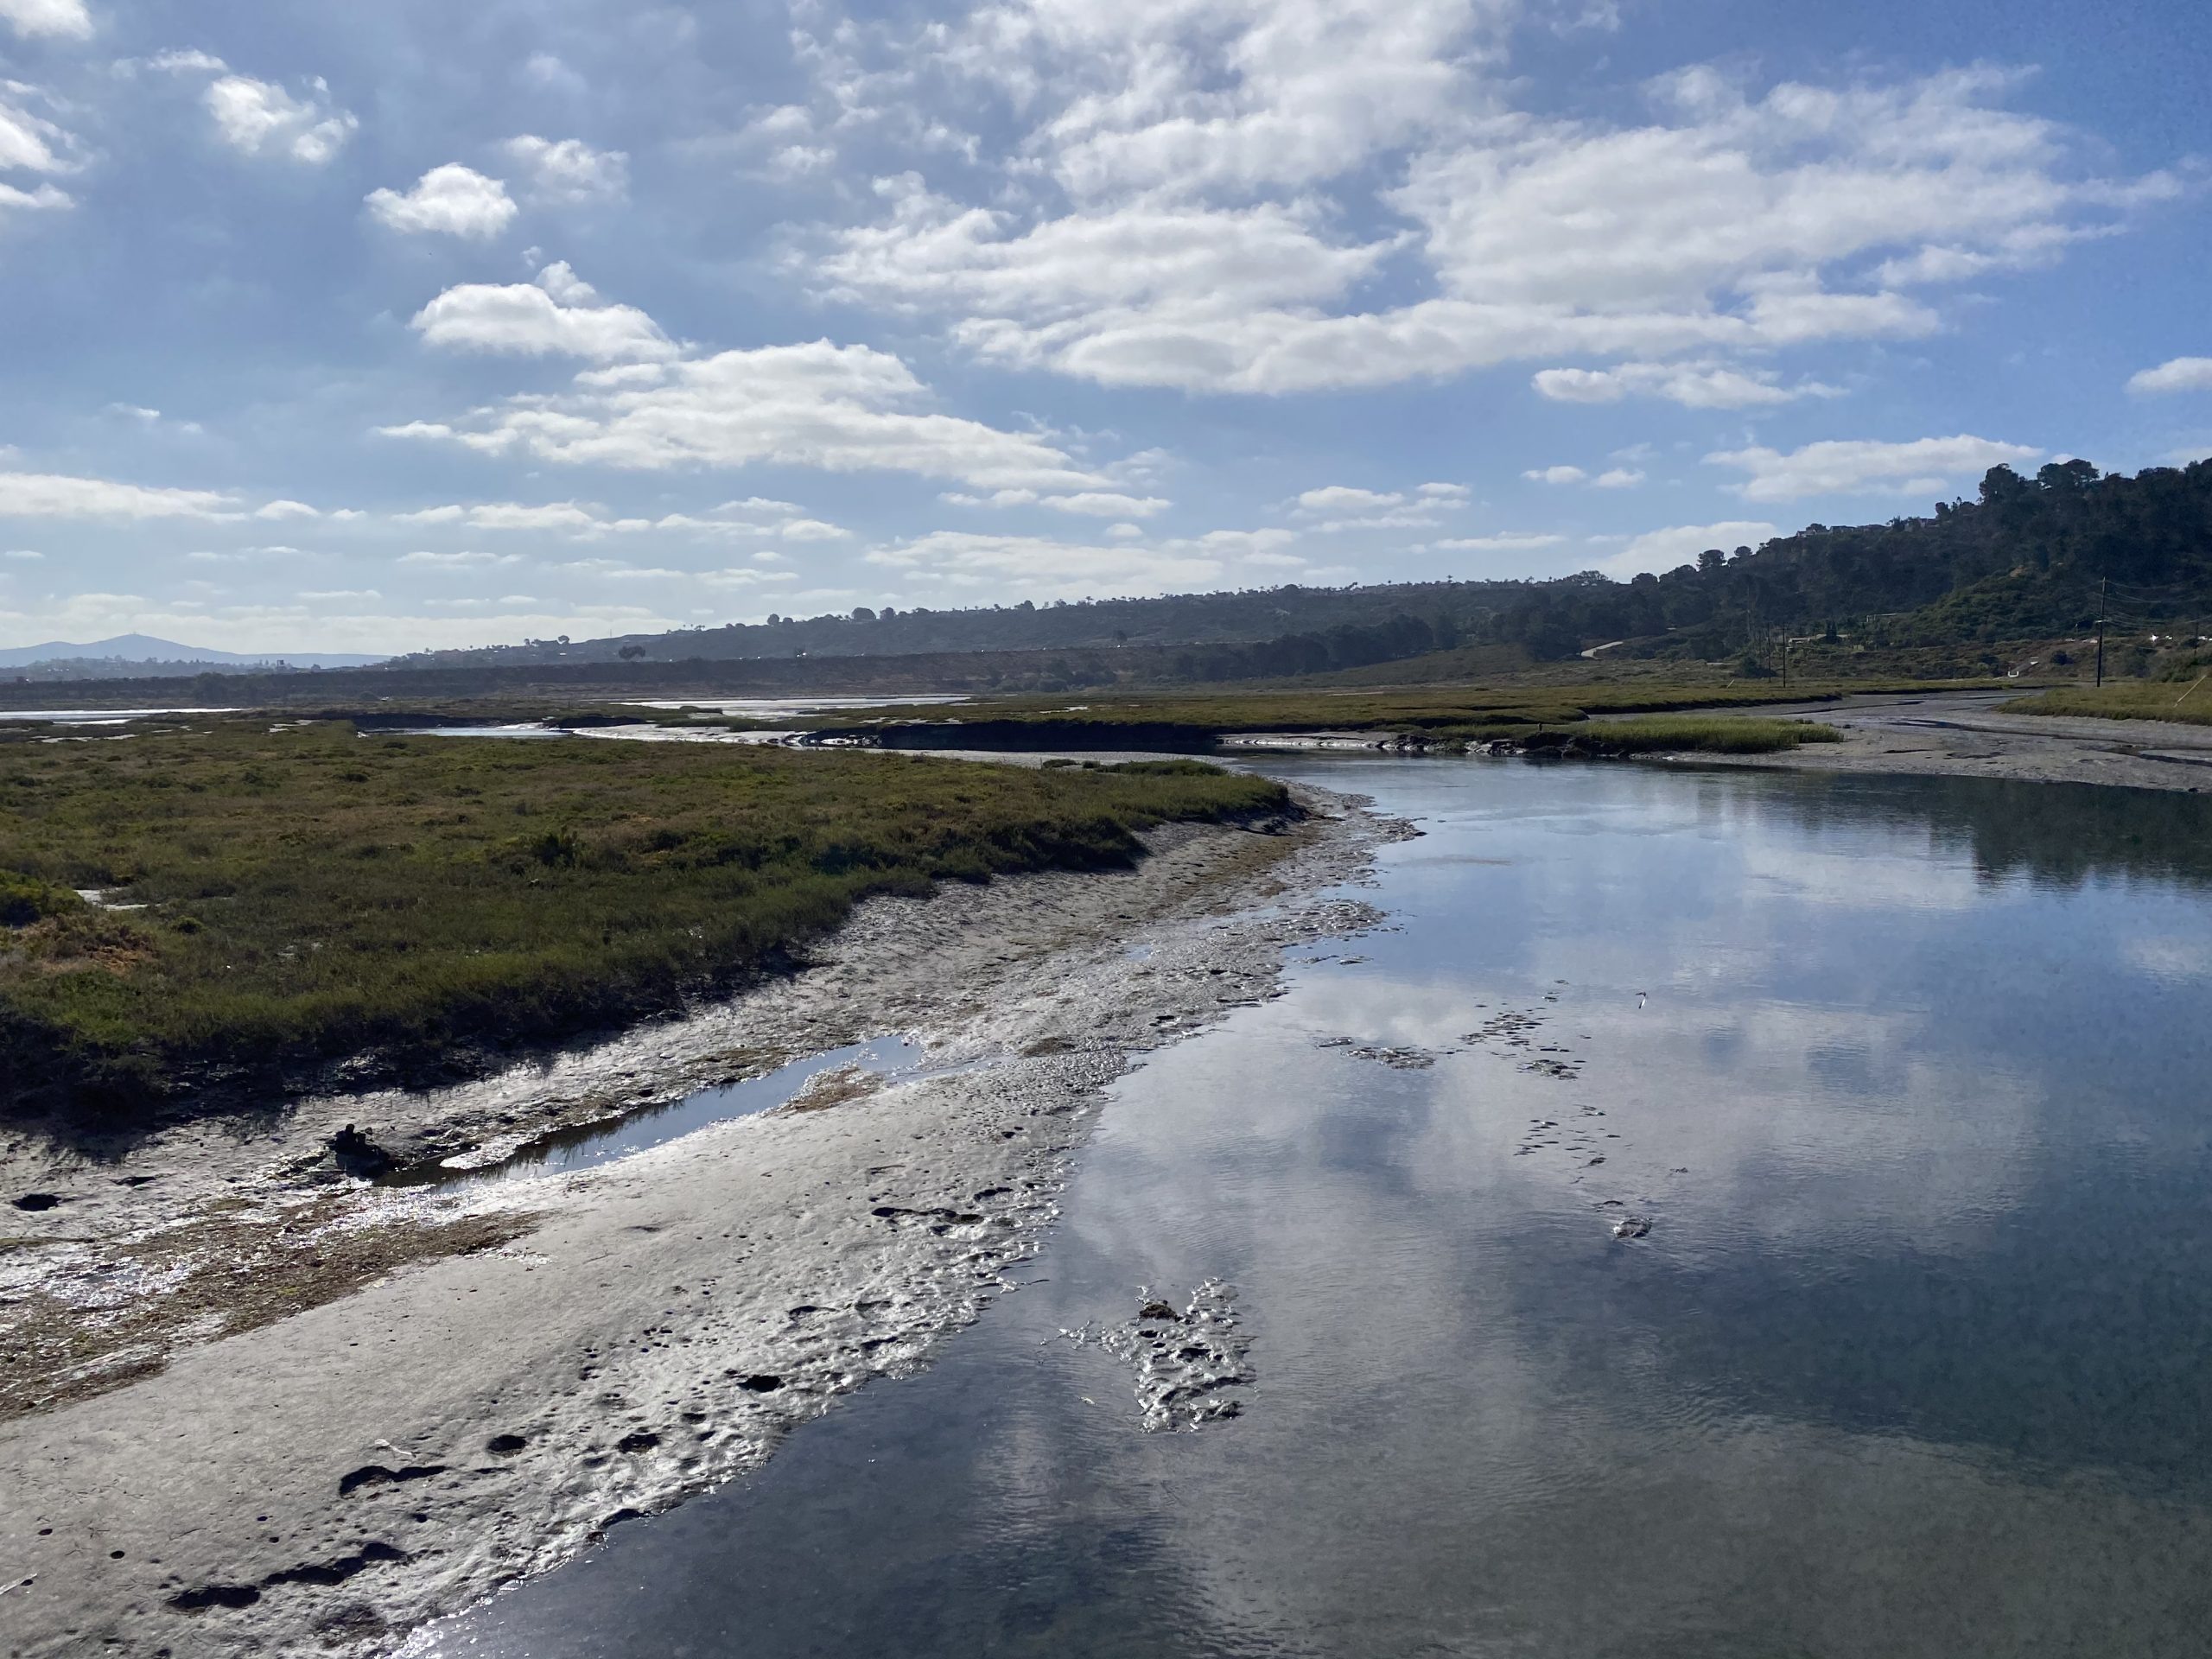 RESEARCHERS EXPLORING HOW SAN DIEGO COUNTY WETLANDS CAN BE PART OF CLIMATE-SAVING STRATEGIES